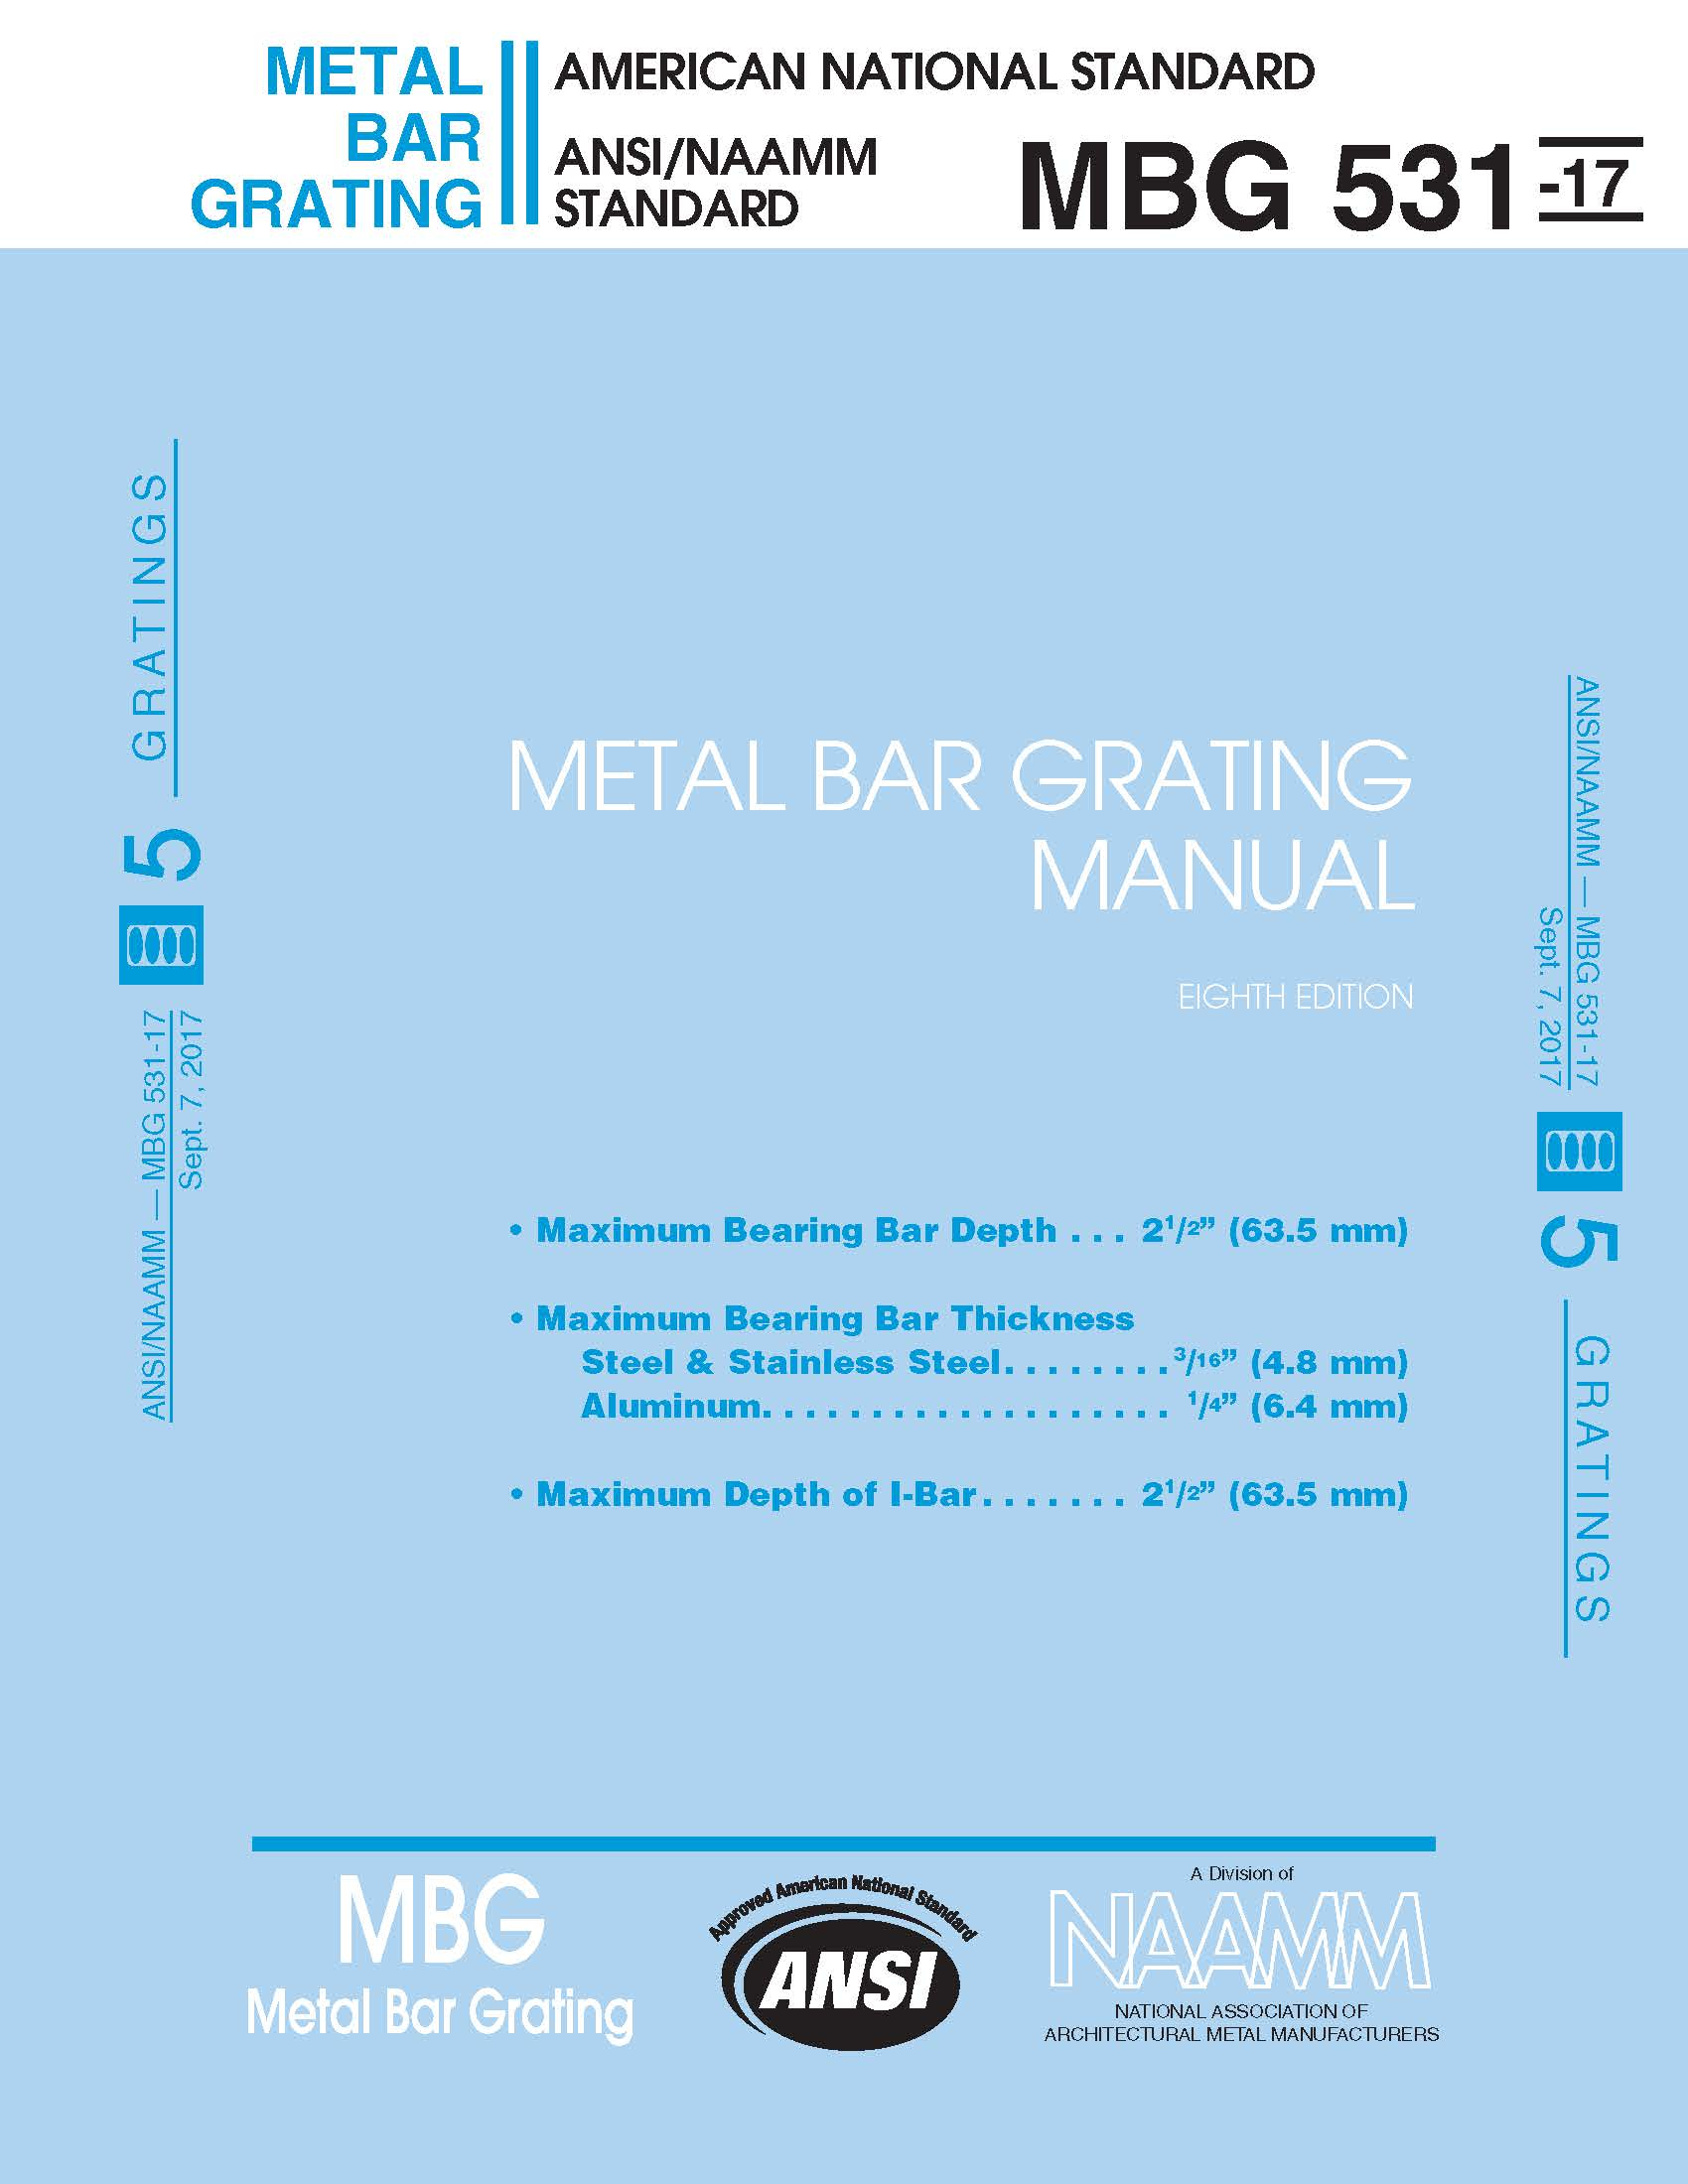 MBG National Association of Architectural Metal Manufacturers